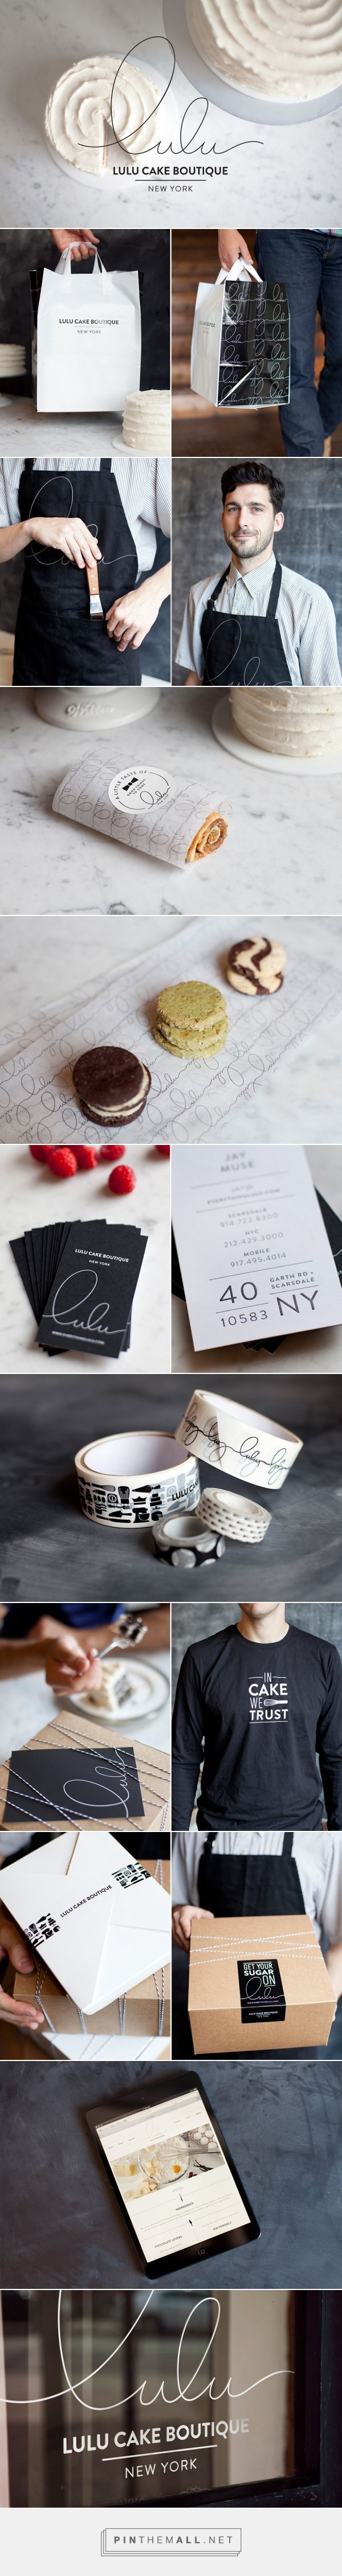 New Brand Identity for Lulu Cake Boutique by Peck and Co - BP&O. Graphic design, Branding, packaging. - created via https://pinthemall.net